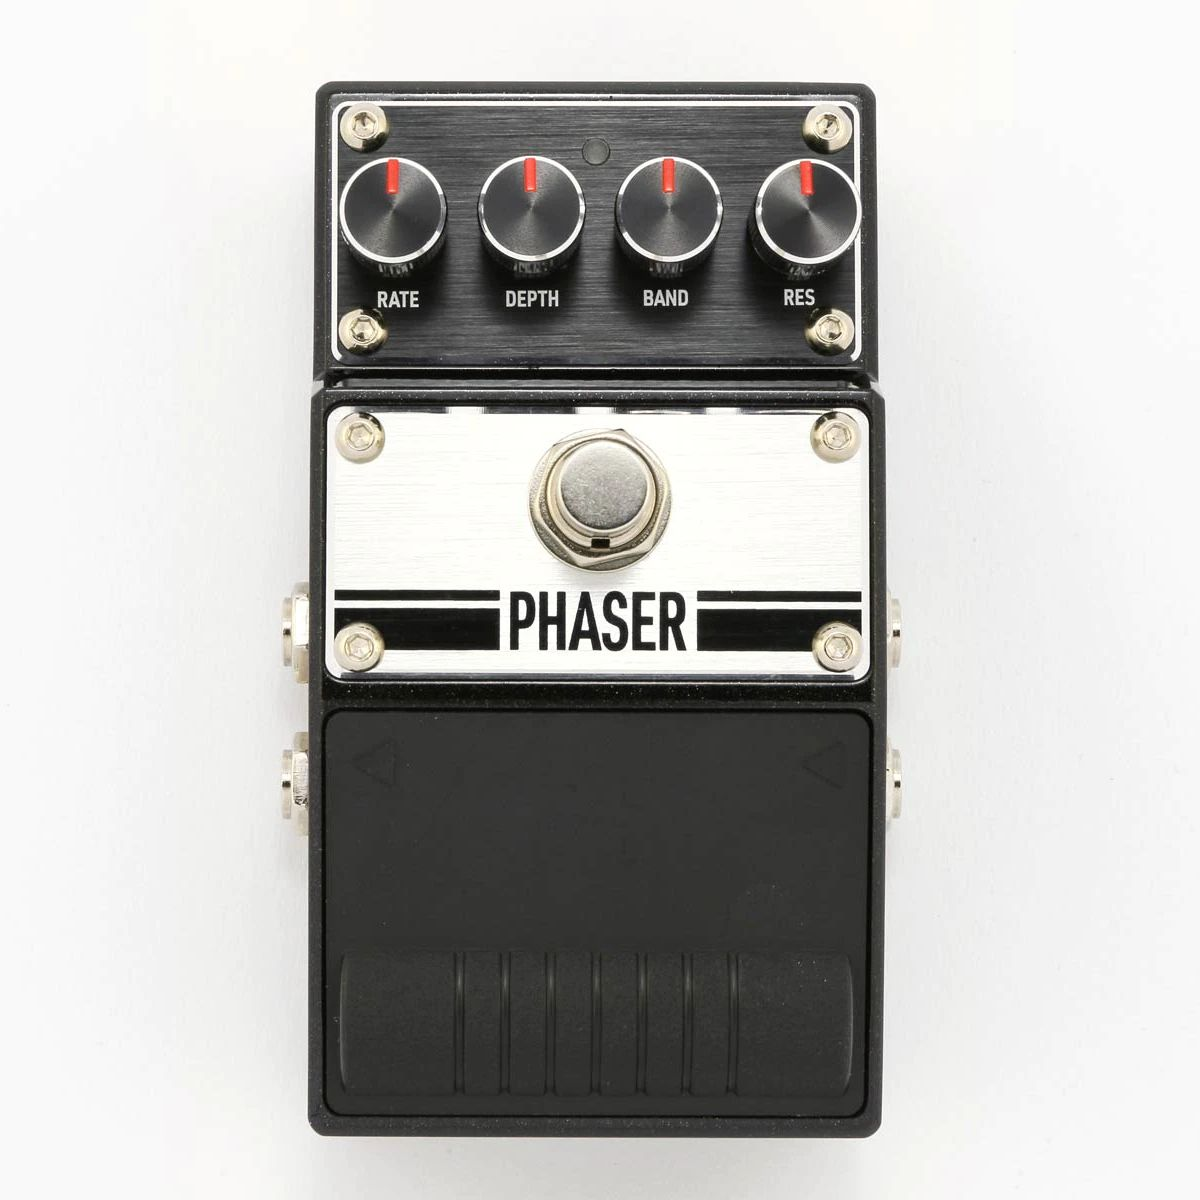 BAC Guitar-Accessories Phaser Audio Effector Pedals with 32 Stages of Shift